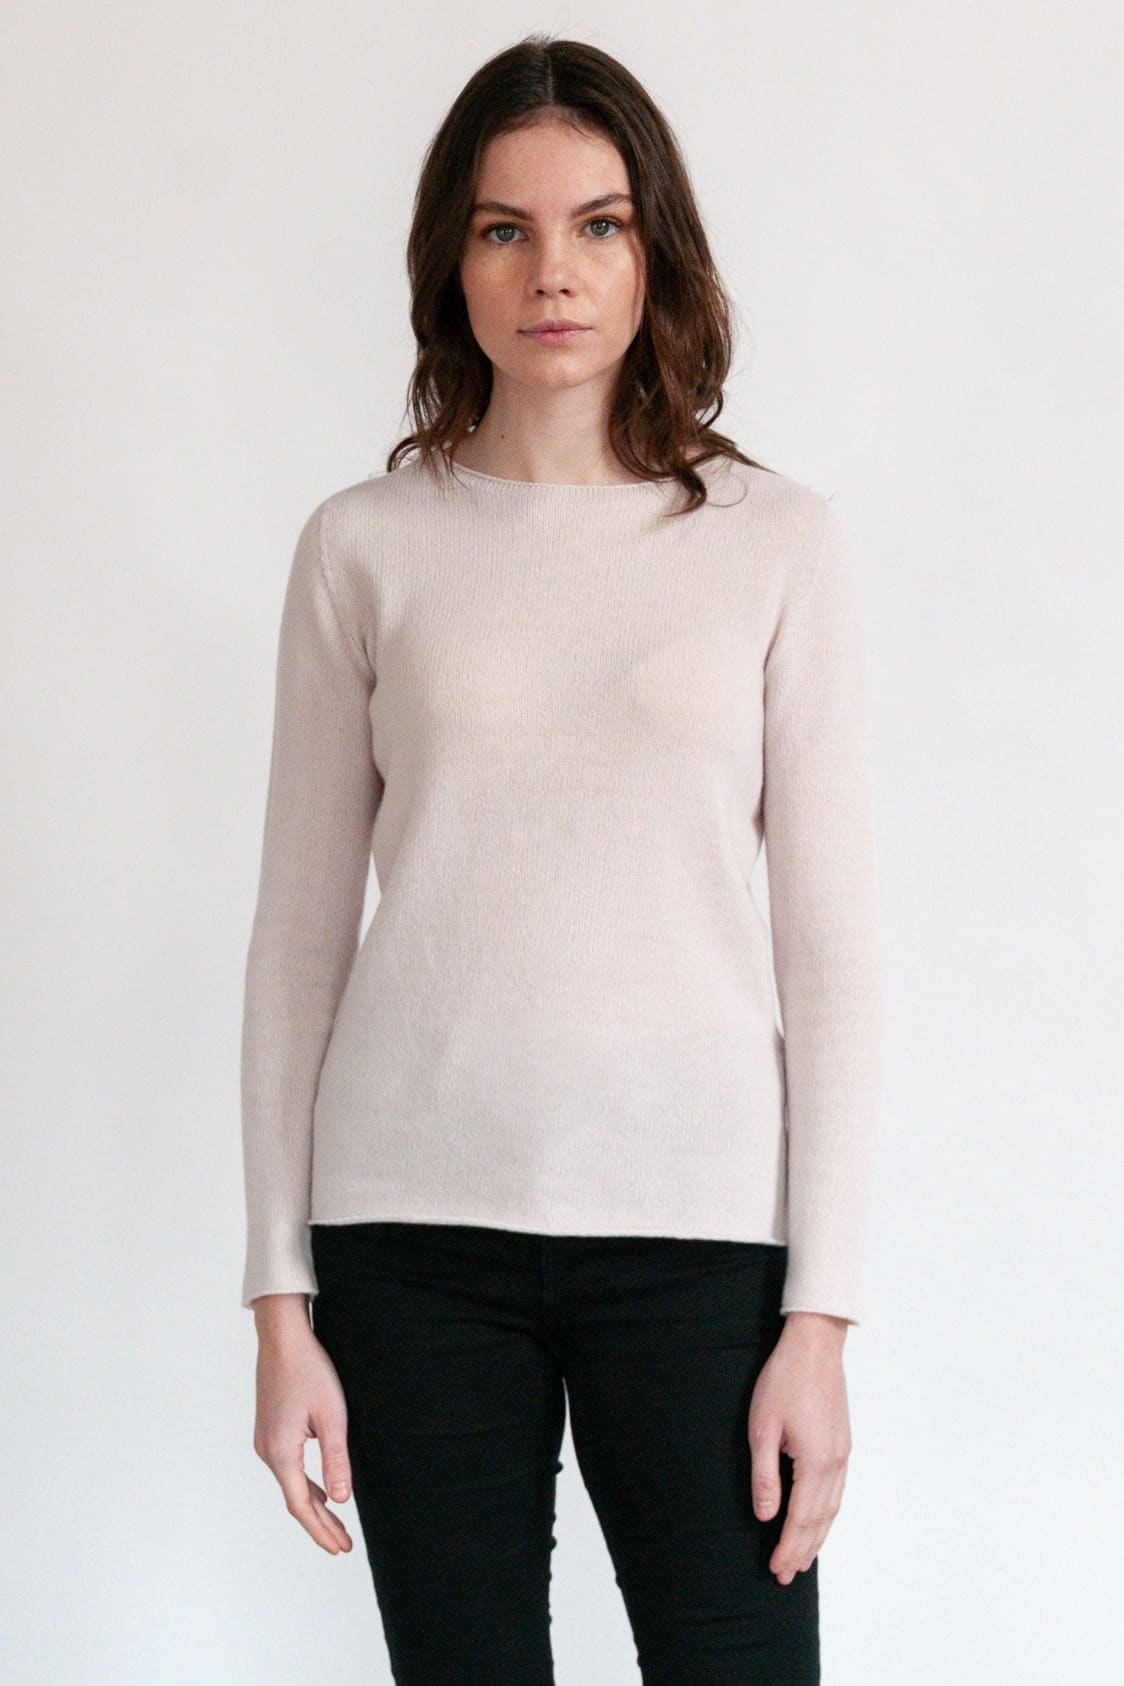 Gress - Slim Crew Neck Sweater - Blush - Sweaters